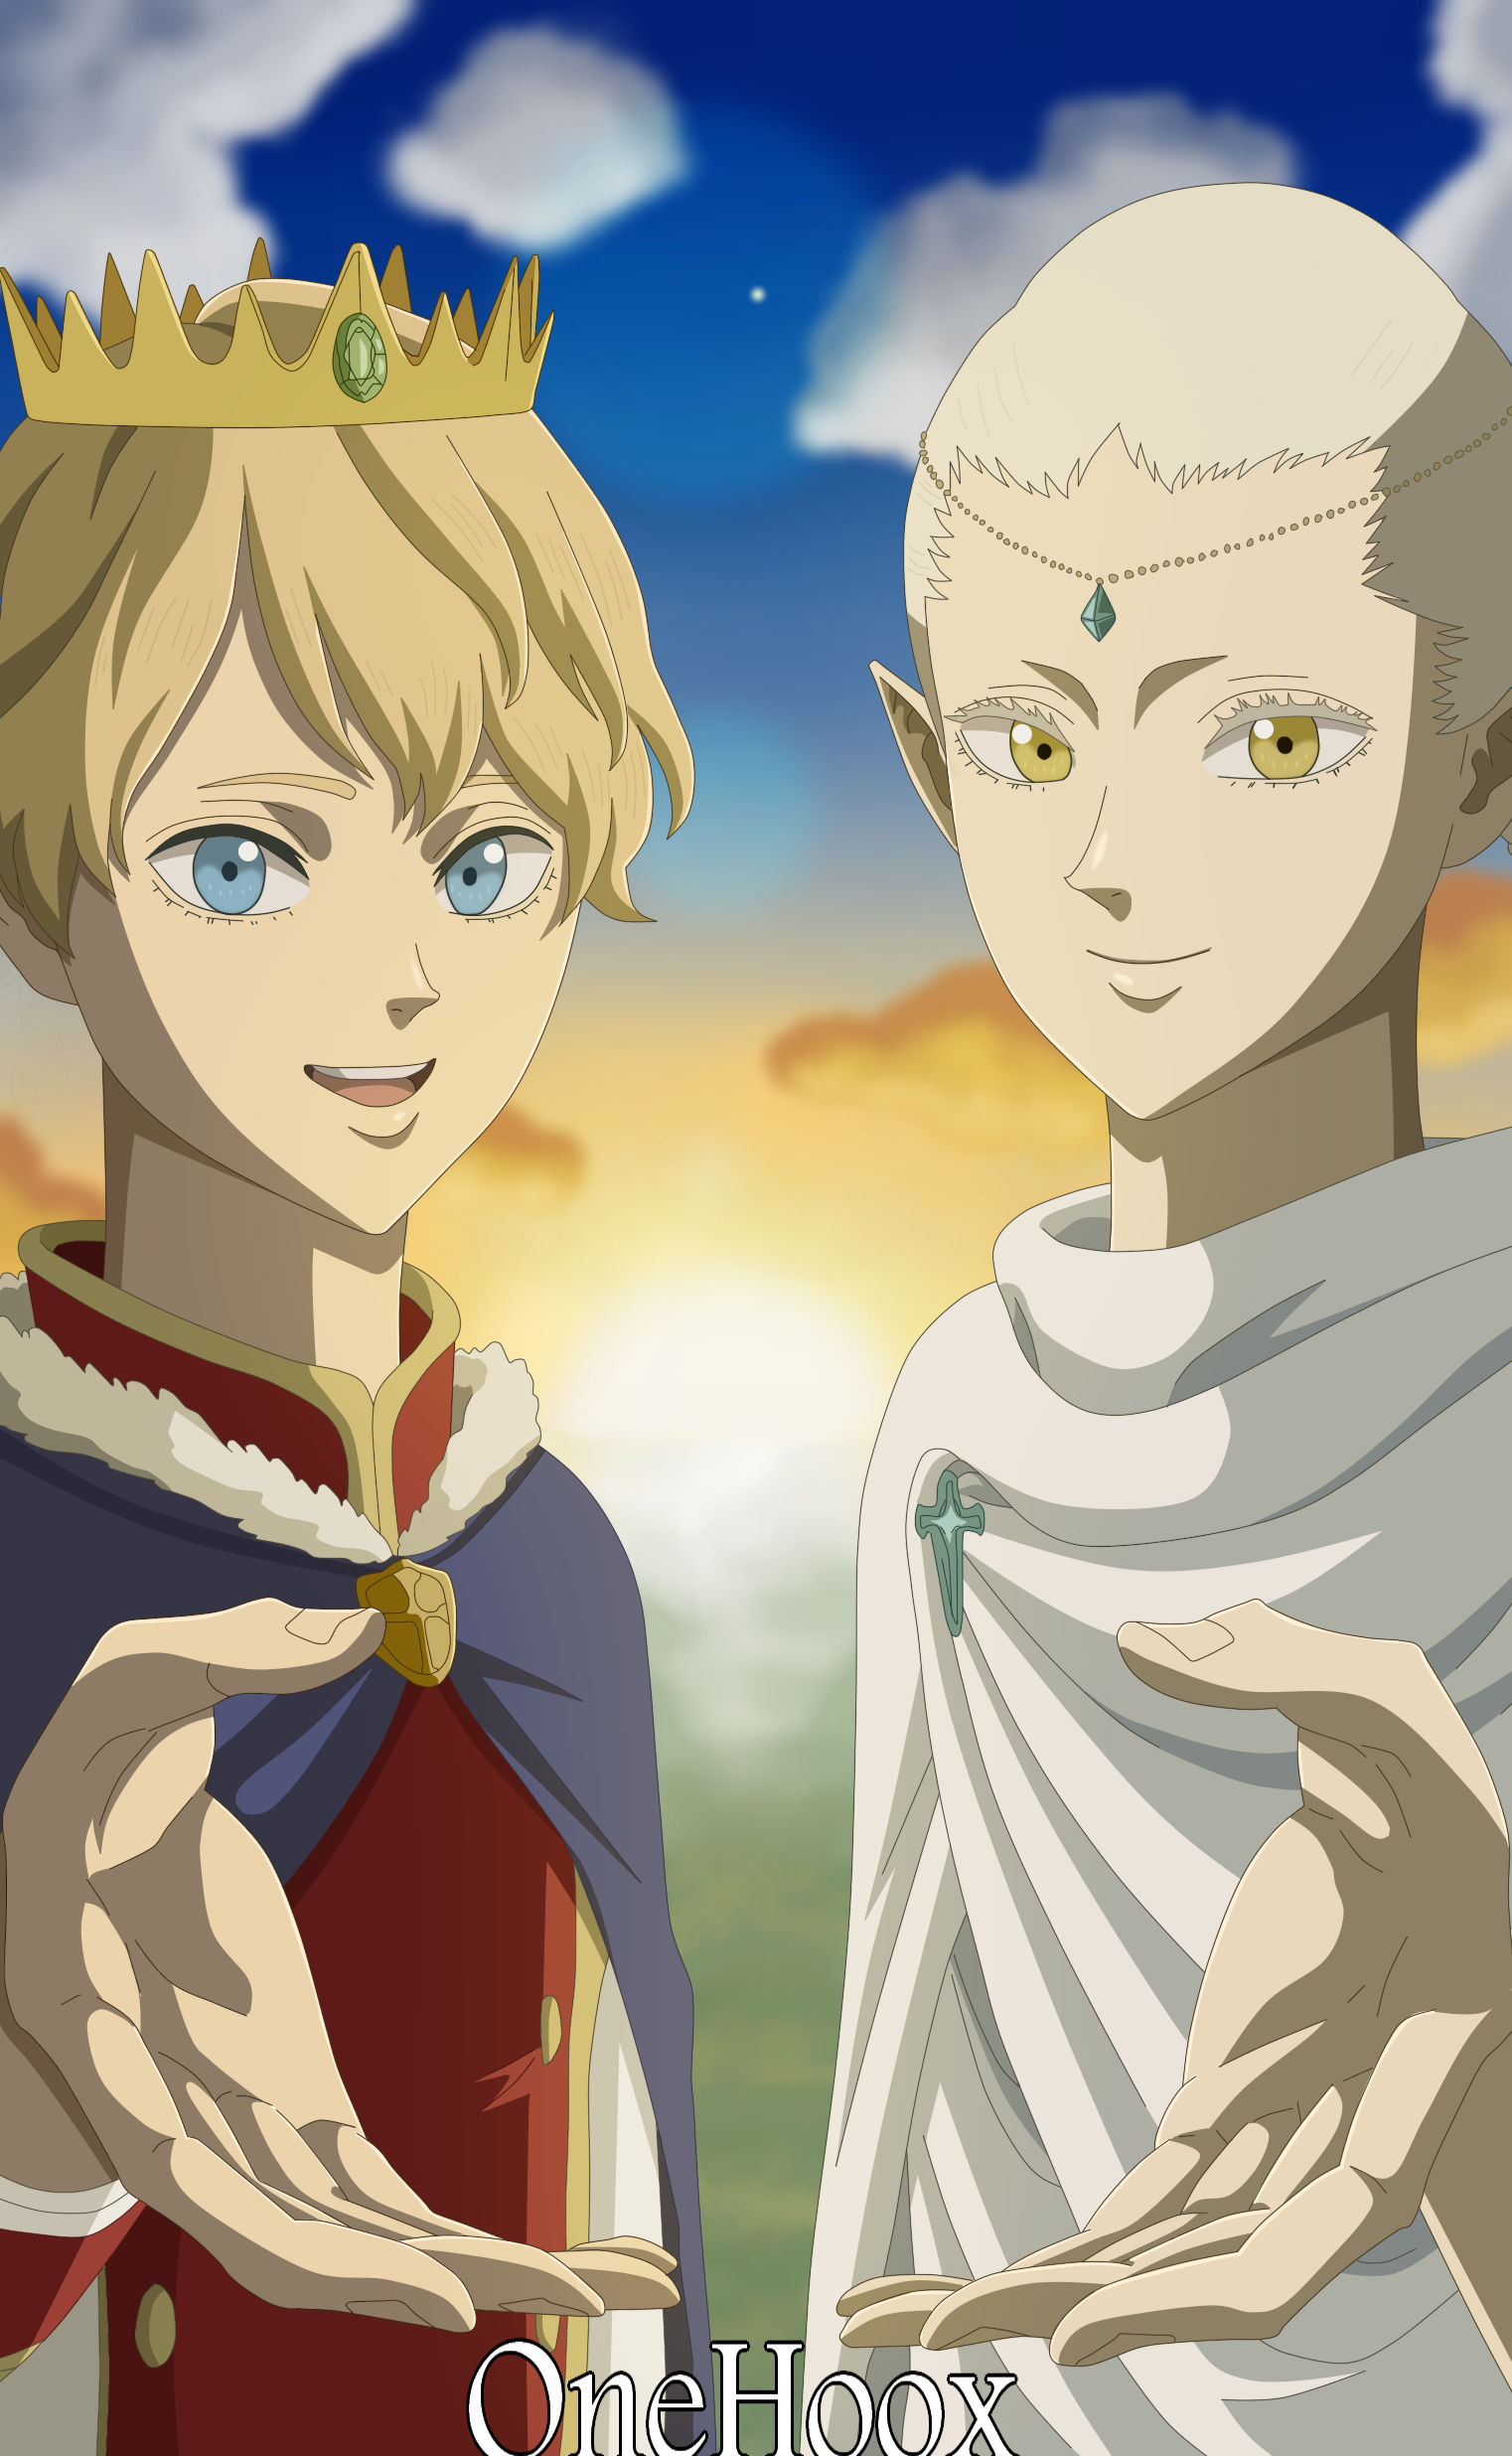 Black Clover Lumiel And Licht By Onehoox On Deviantart Tv anime black clover official site (japanese). black clover lumiel and licht by